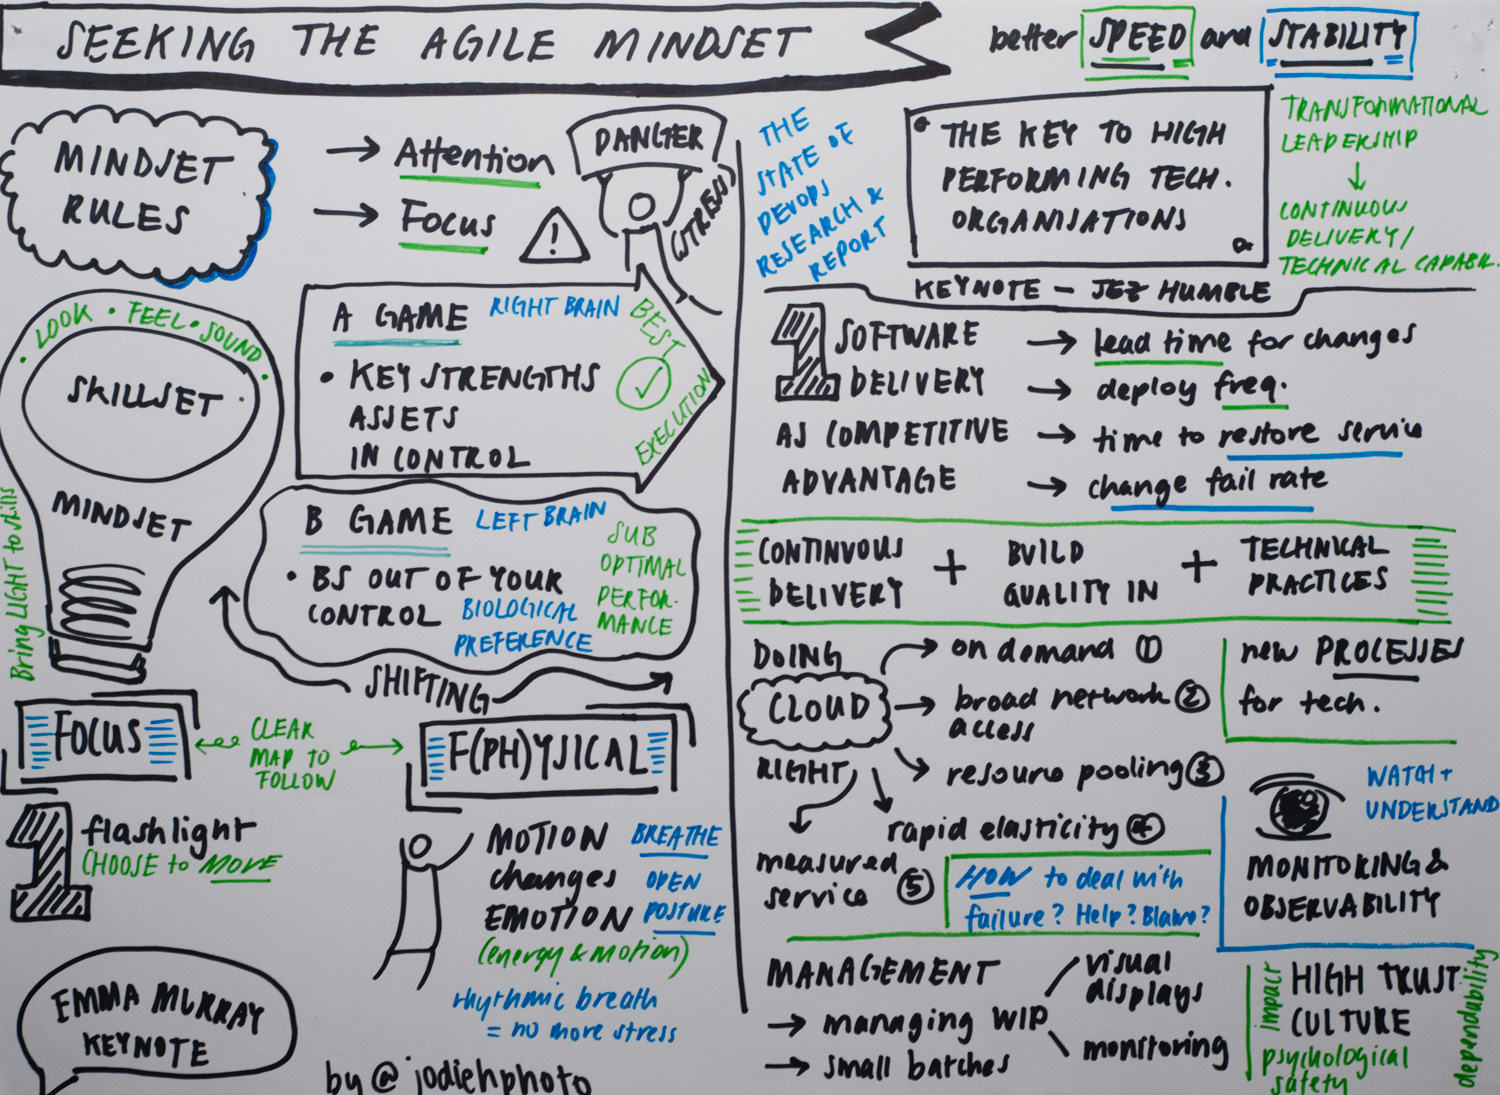 seeking the agile mindset